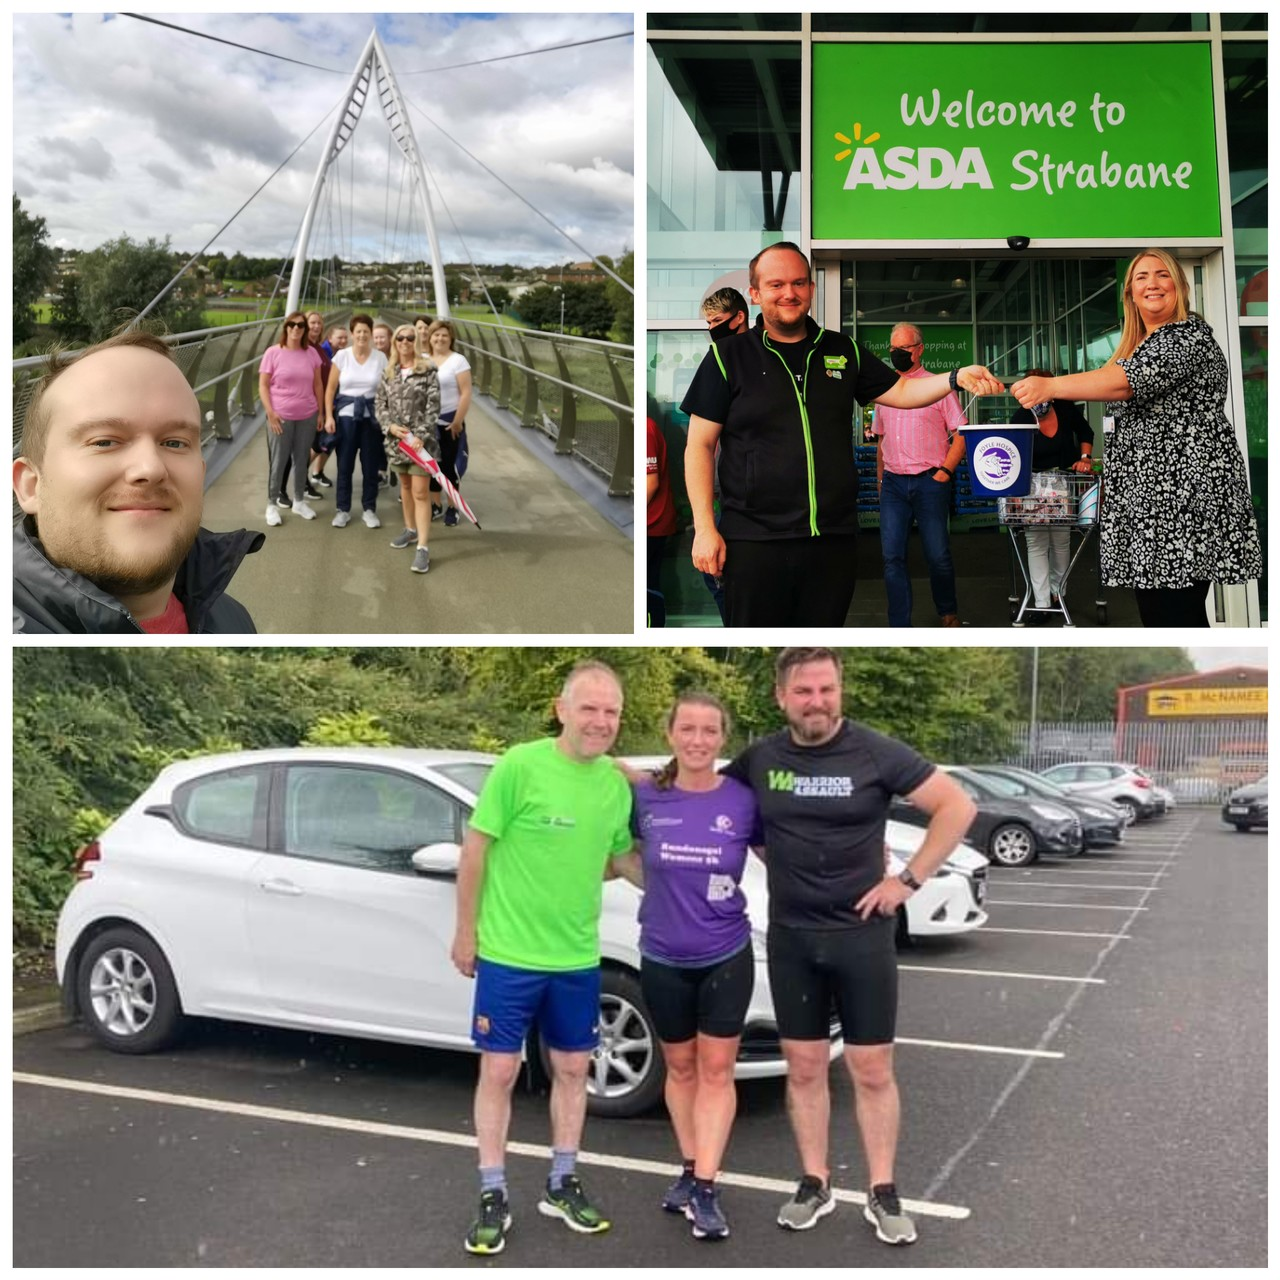 Colleagues step out to raise money for Foyle Hospice  | Asda Strabane